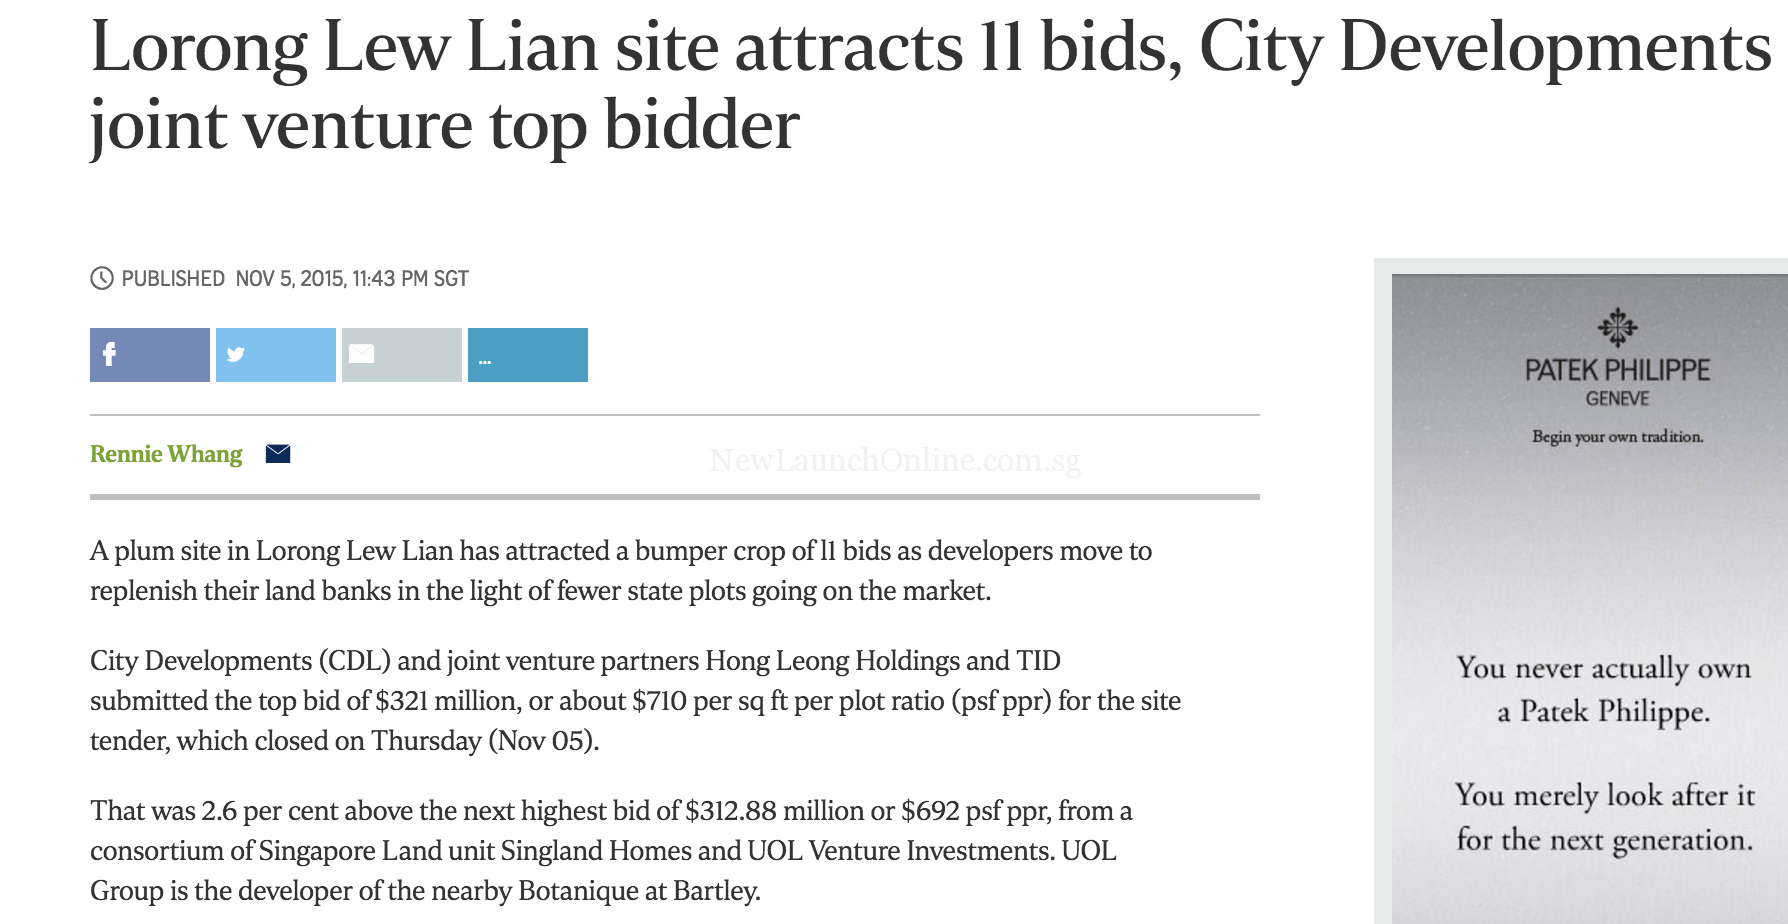 Lorong Lew Lian site attracts 11 bids